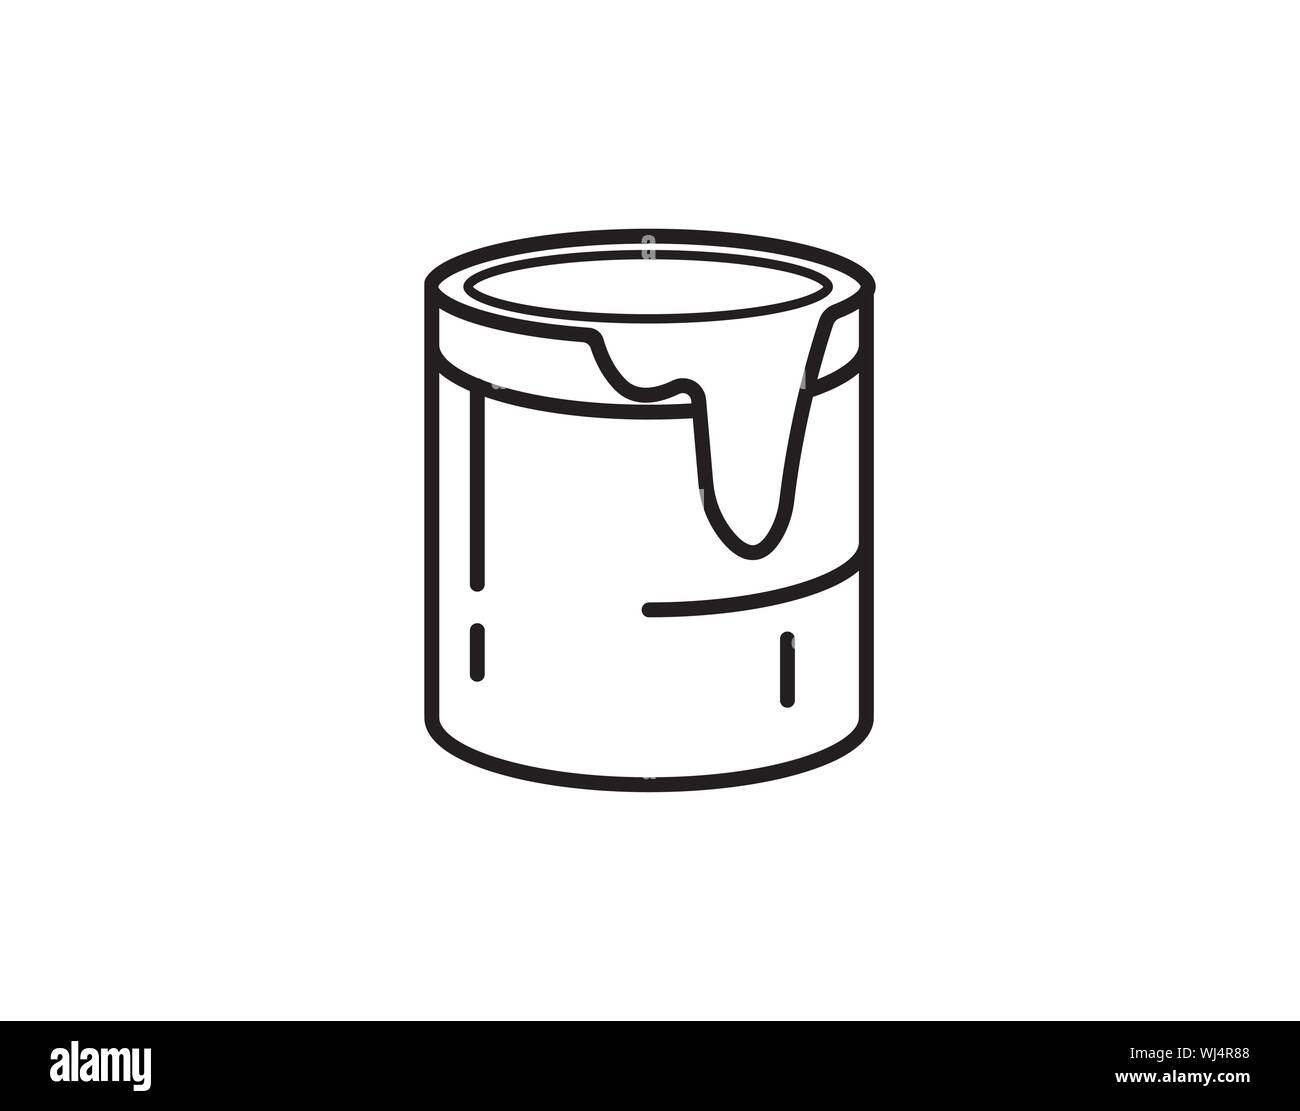 Paint Bucket Vector Icon Color Symbol Modern Simple Flat Vector Illustration For Web Site Or Mobile App Stock Vector Image Art Alamy